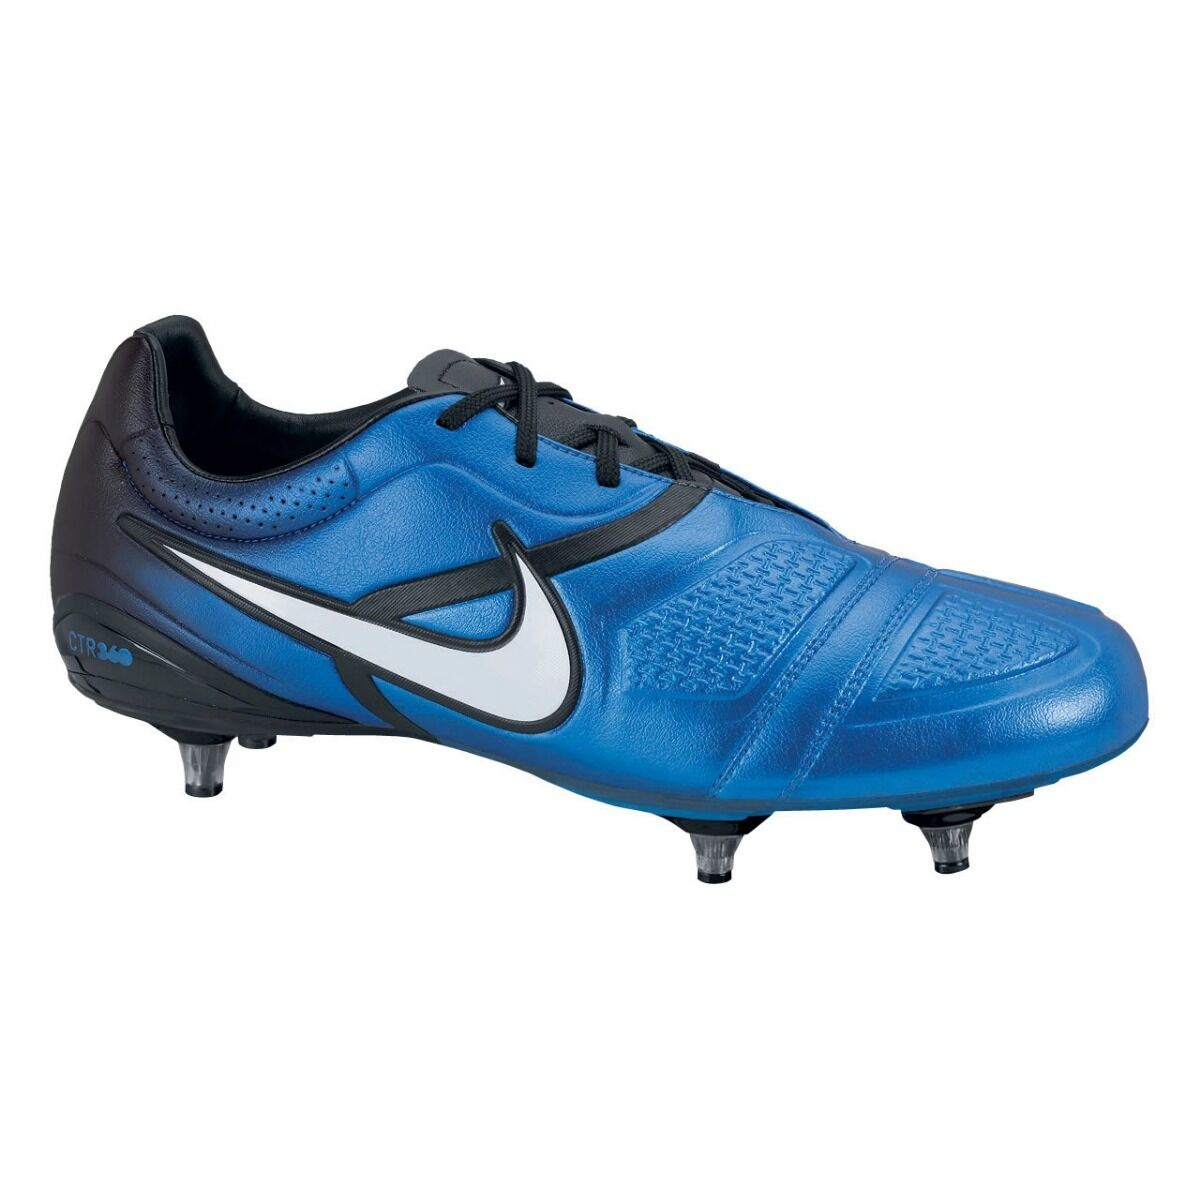 NIKE homme Taille MAESTRI 6  CTR 360 MAESTRI Taille SG FOOTBALL Bottes chaussures SOFT GROUND Bleu eb1642